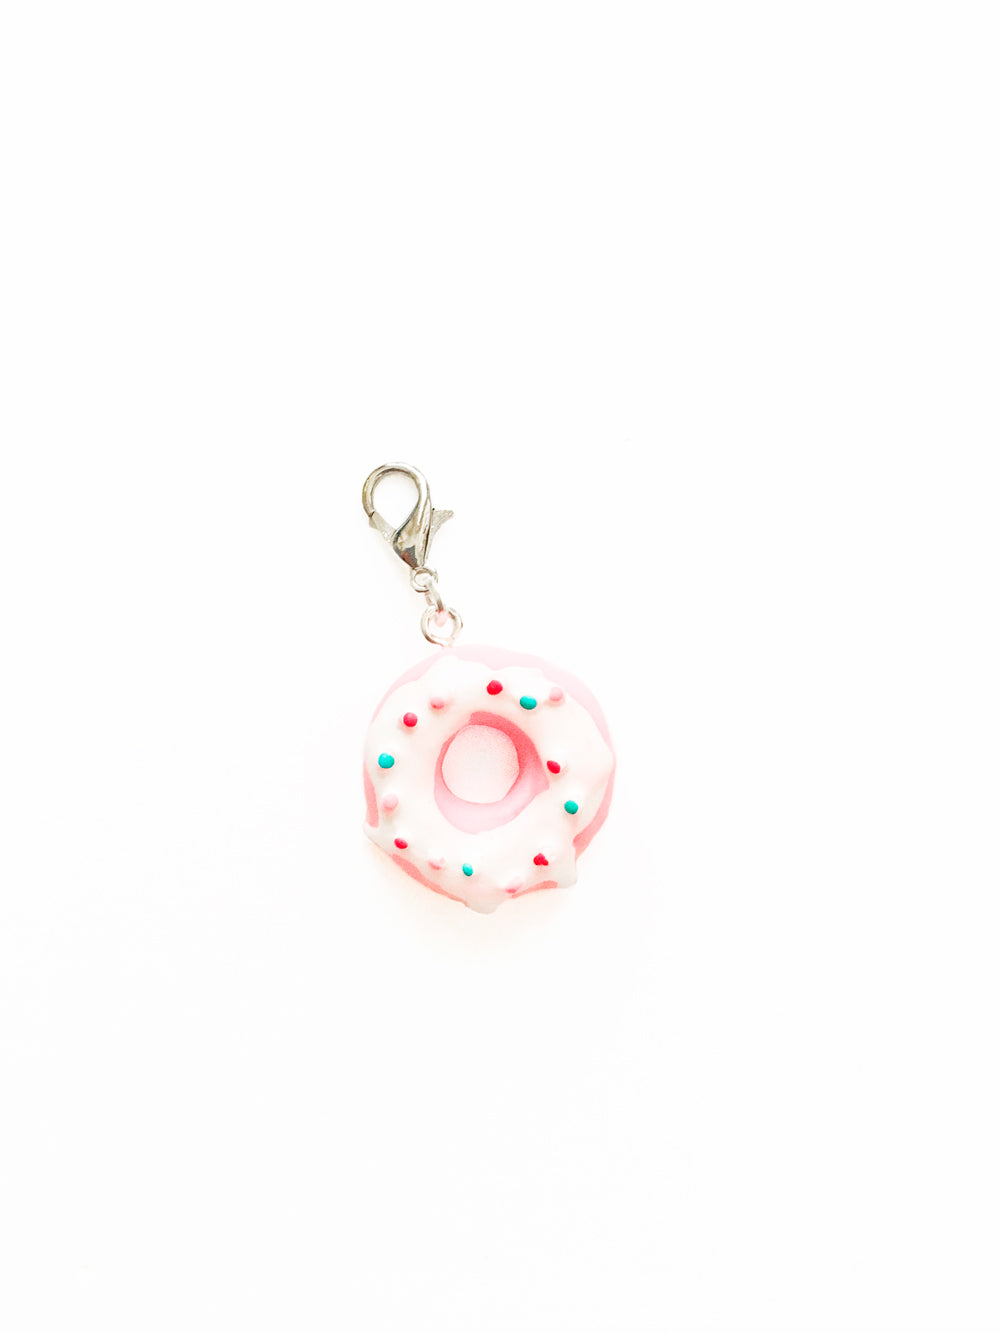 Sprinkled Pink Donut Zipper Pull Charm